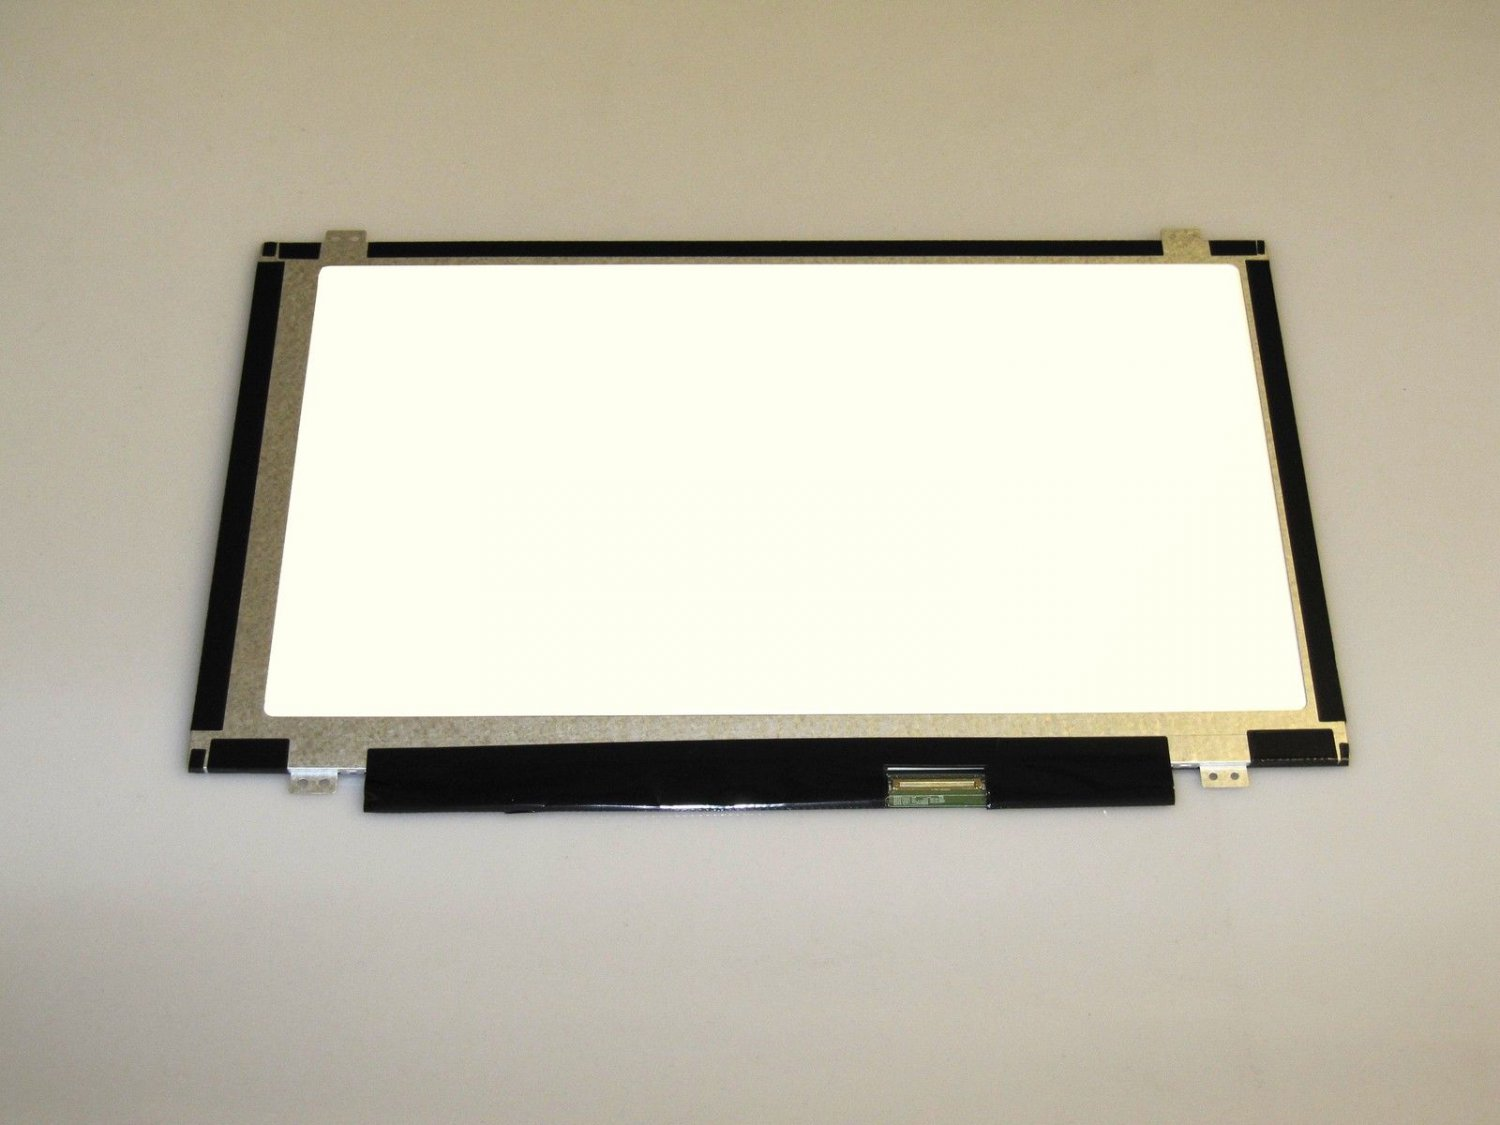 "Laptop Lcd Screen For Lenovo Thinkpad E420 14.0"" Wxga Hd"